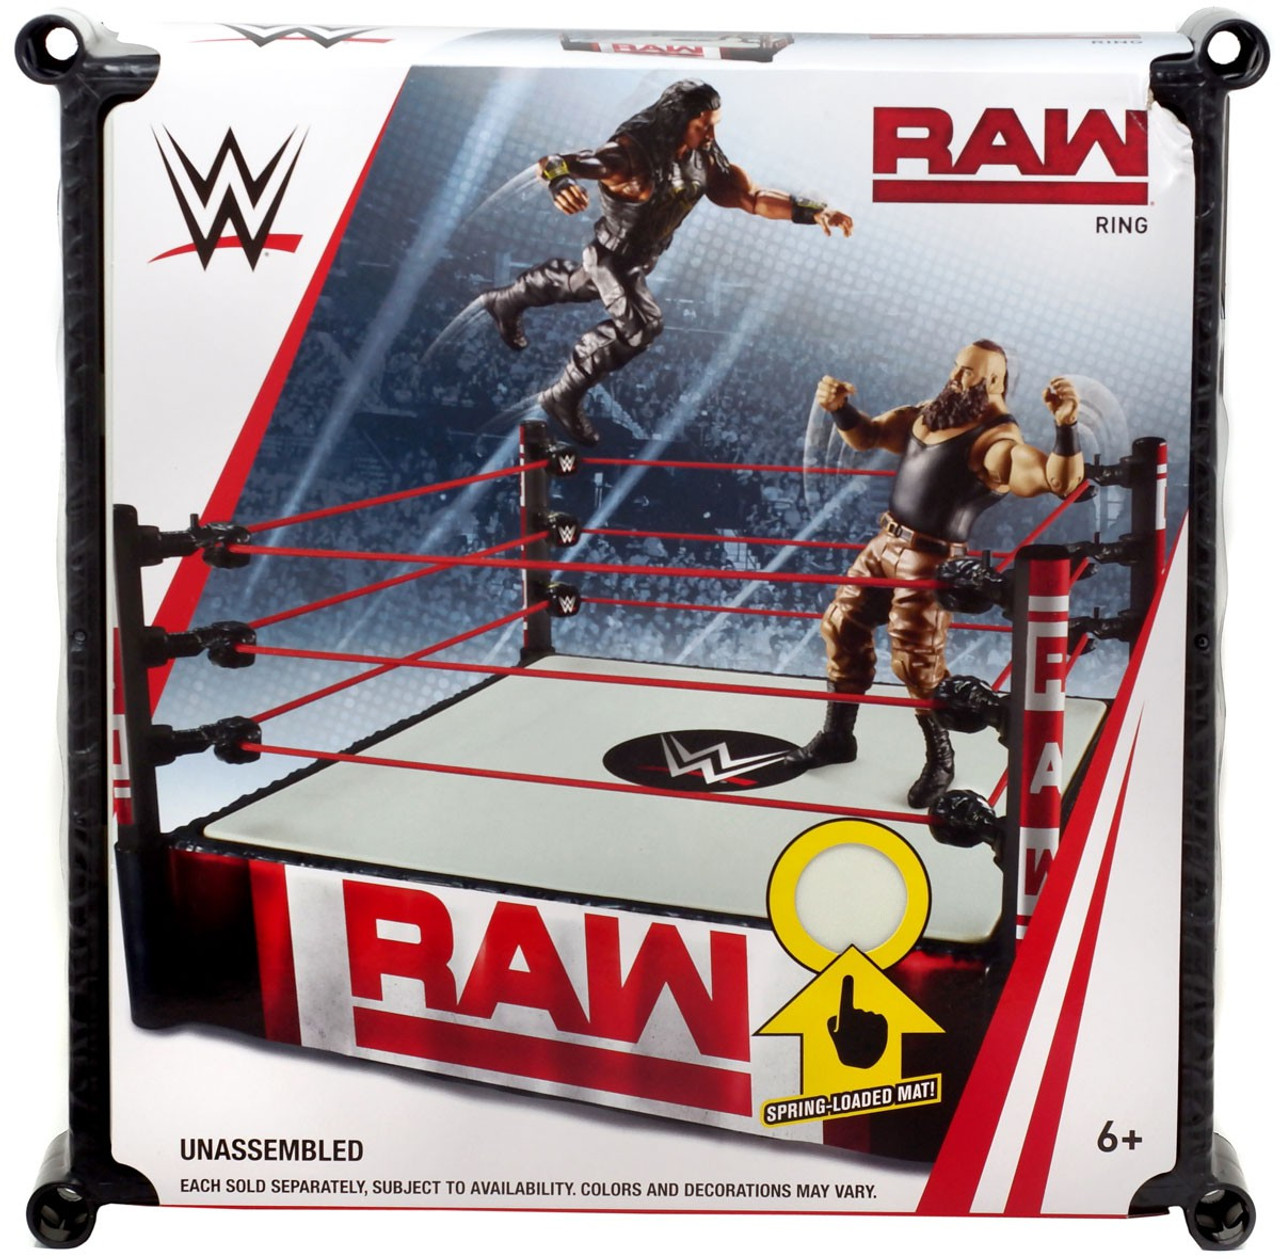 40feefb12598 WWE Wrestling Raw Superstar Ring Spring-Loaded Mat Mattel Toys - ToyWiz